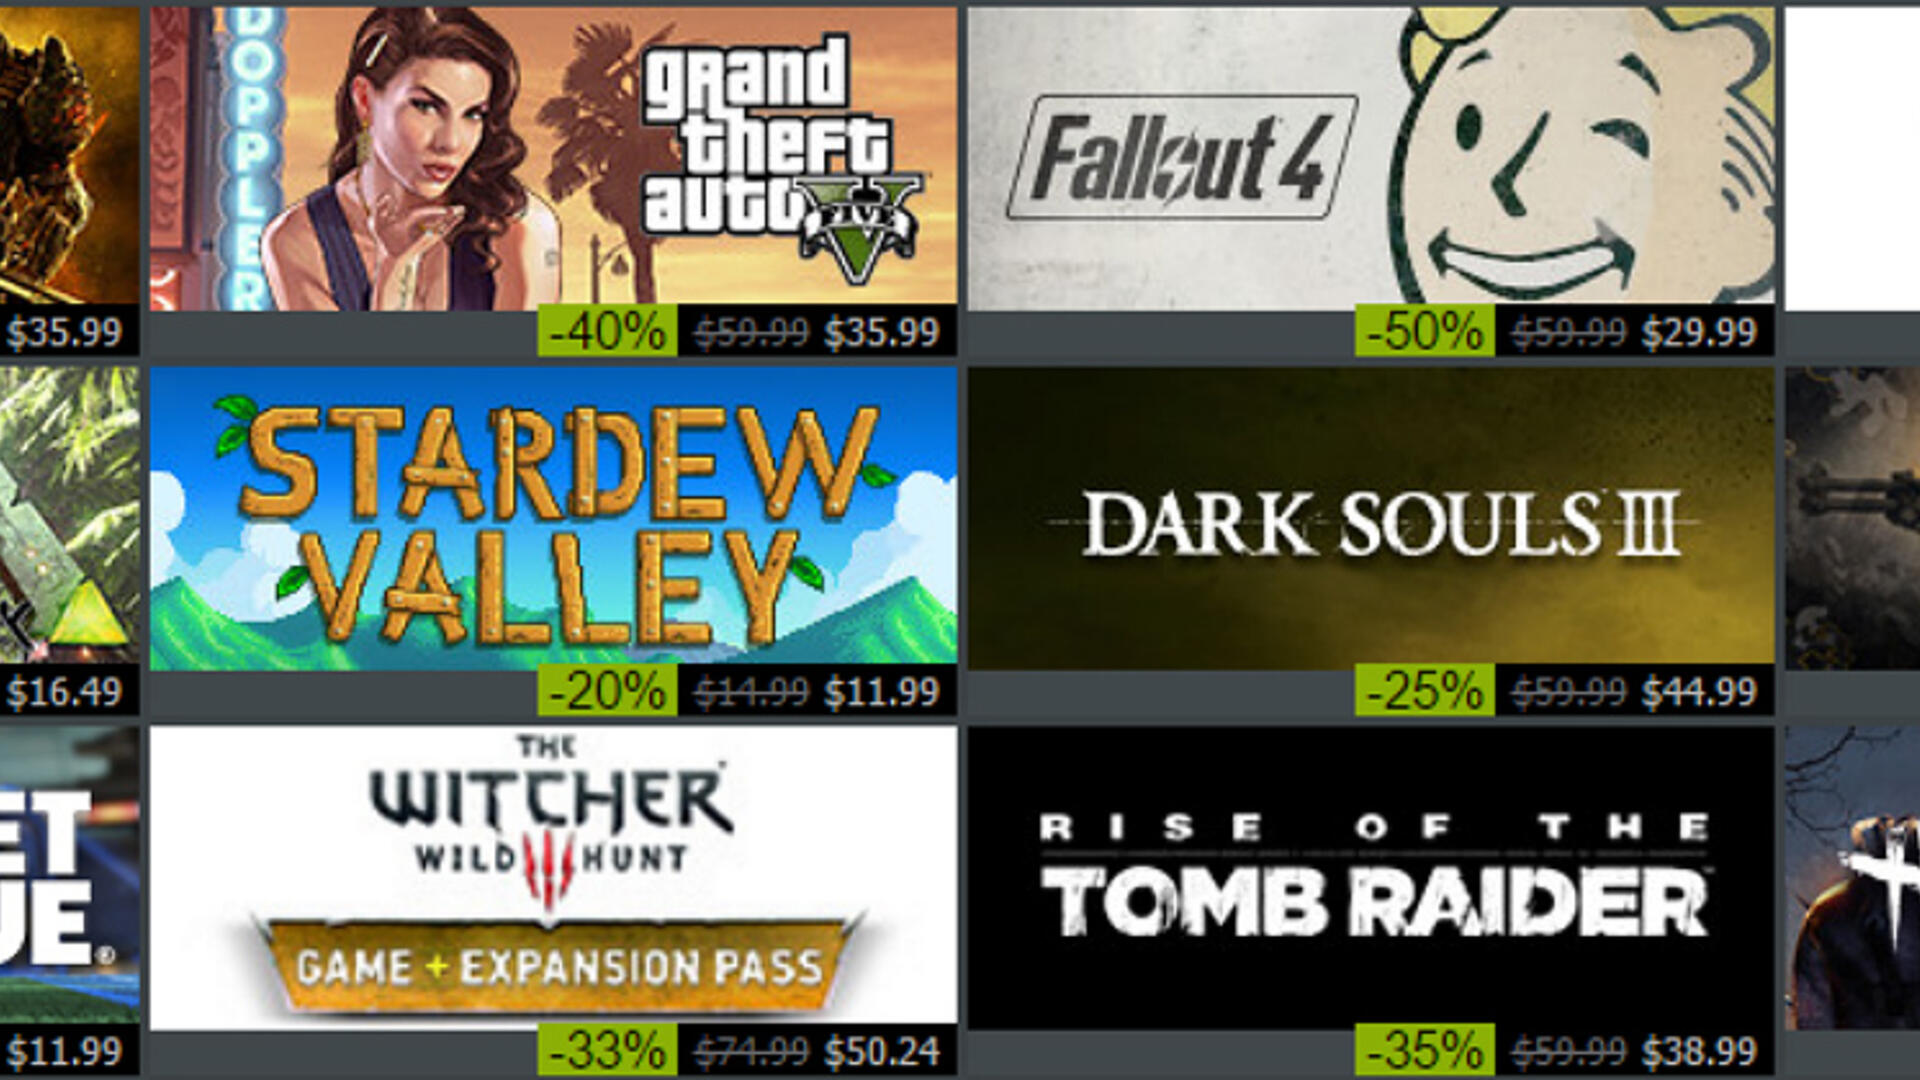 What Are the Best Deals in the Steam Summer Sale? 2016 Edition